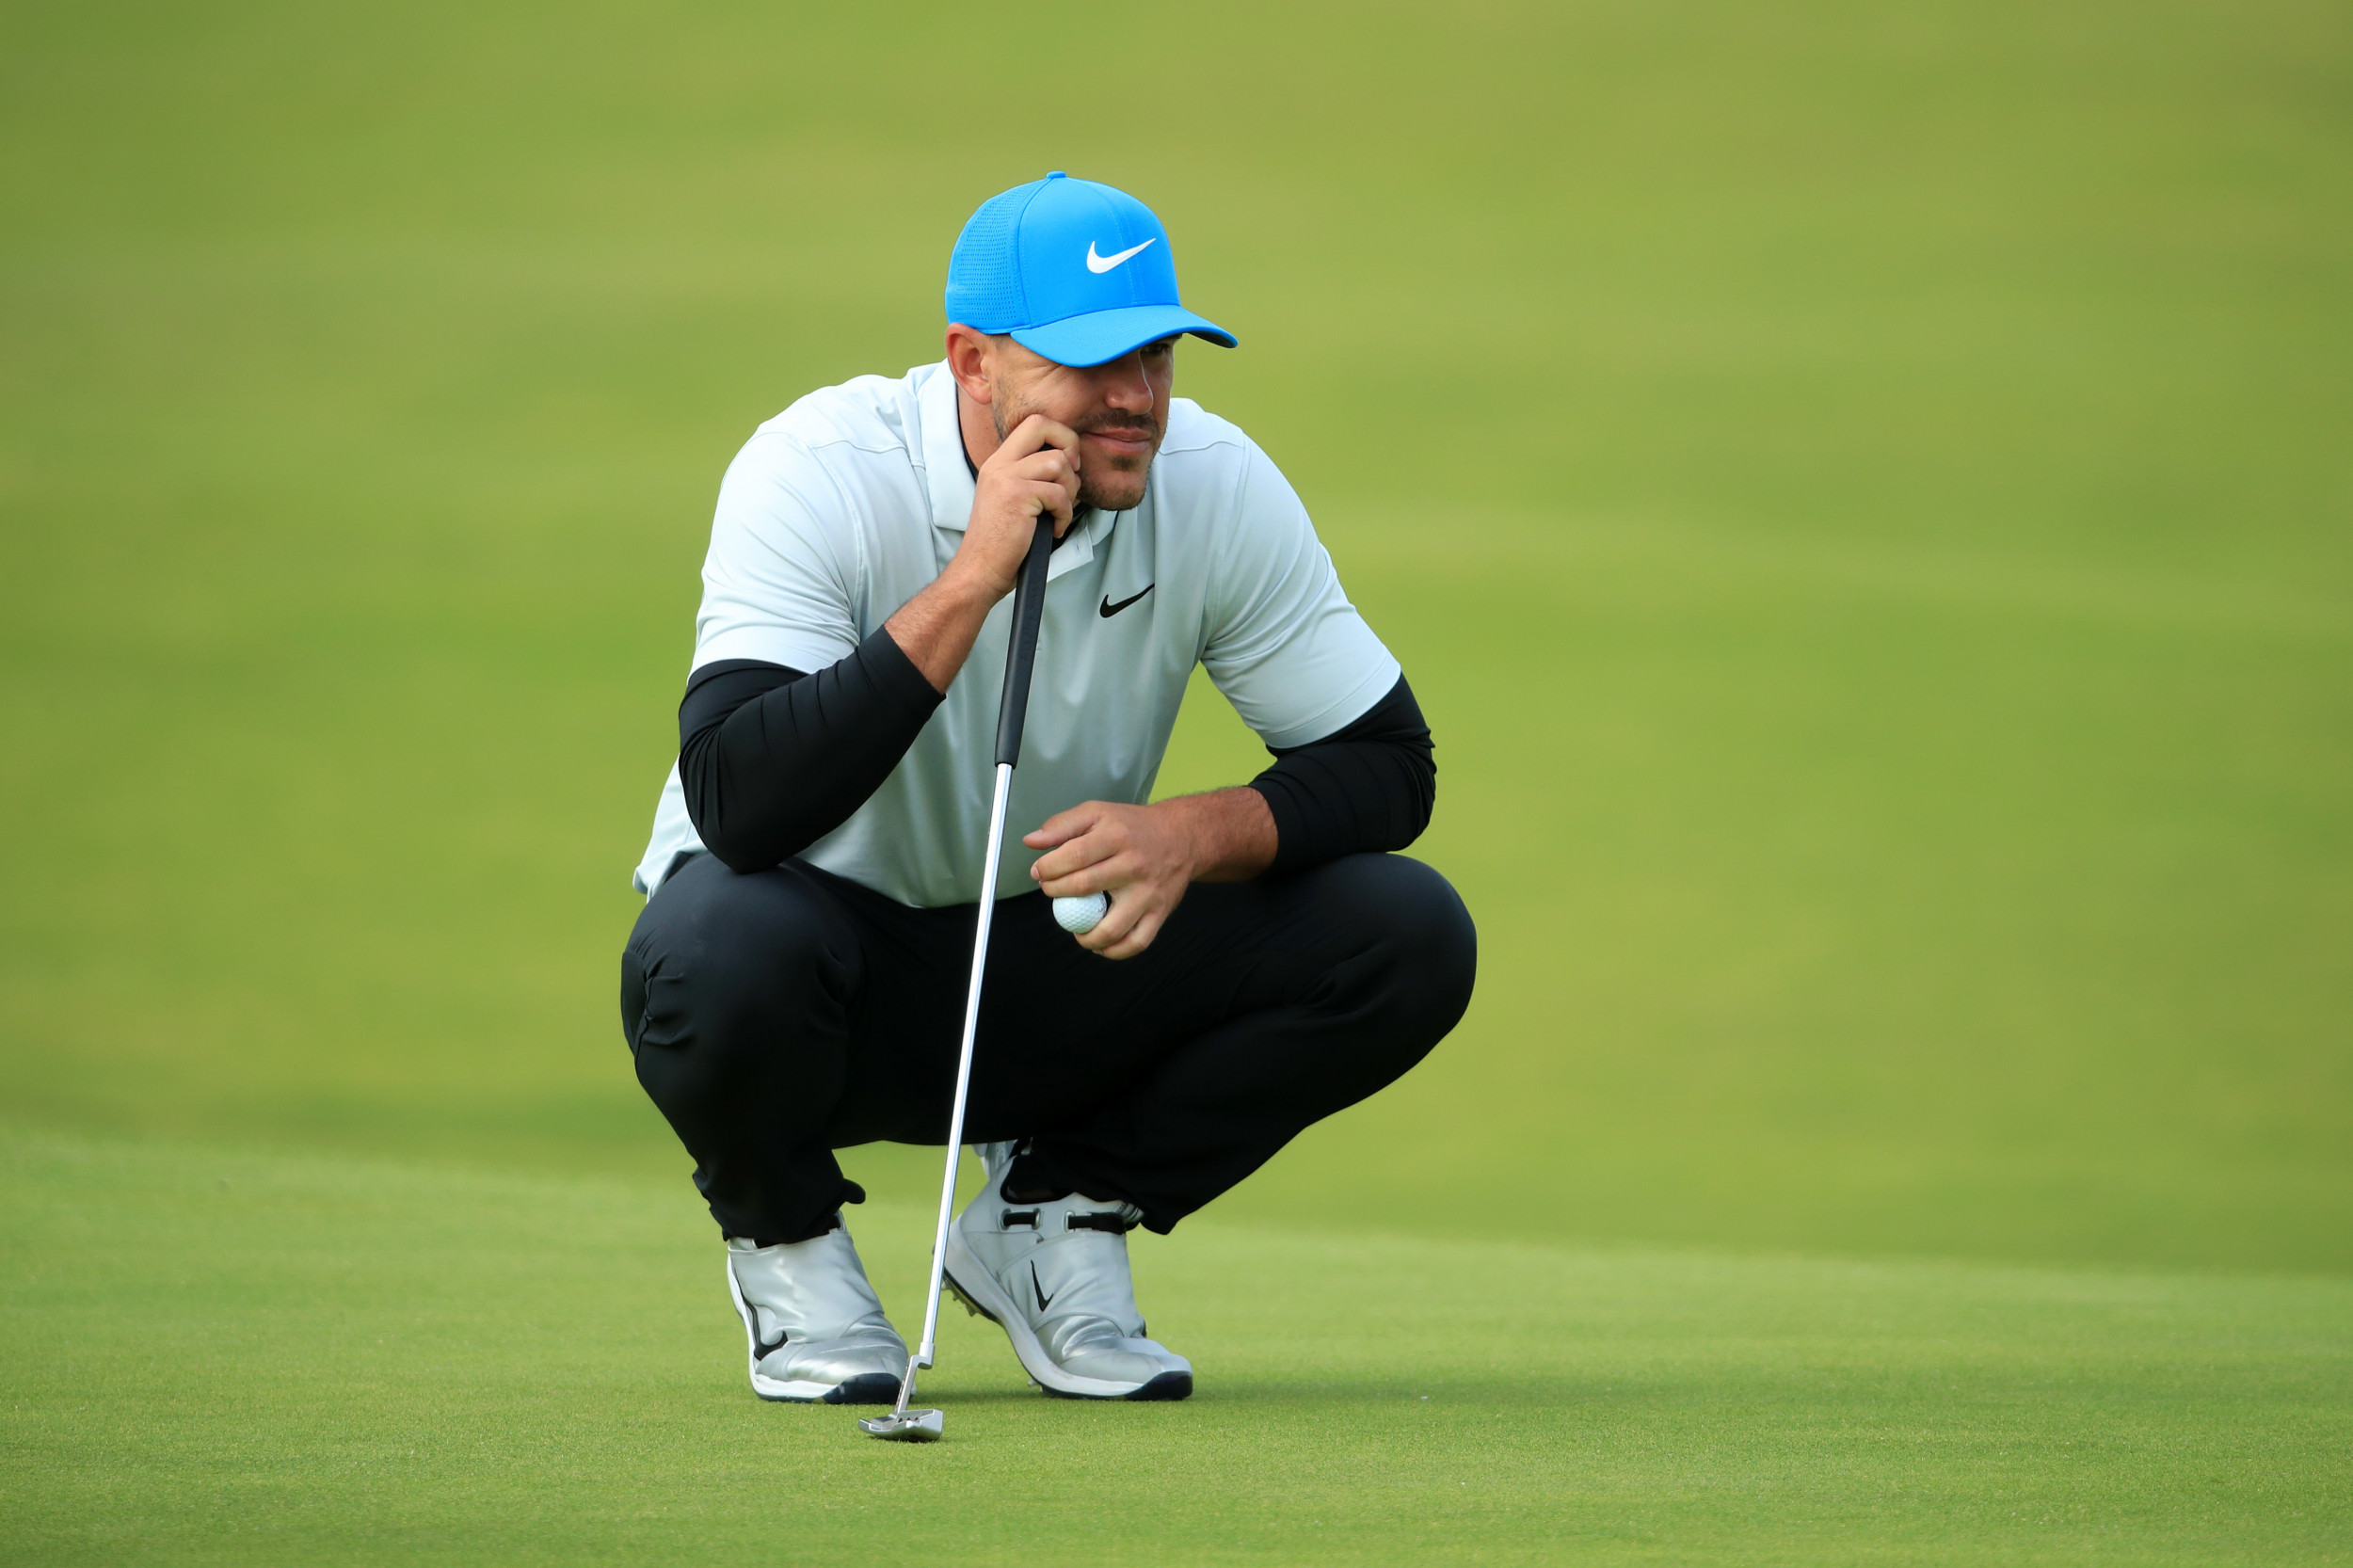 British Open 2019 odds: Latest live odds as golf major heads into the weekend